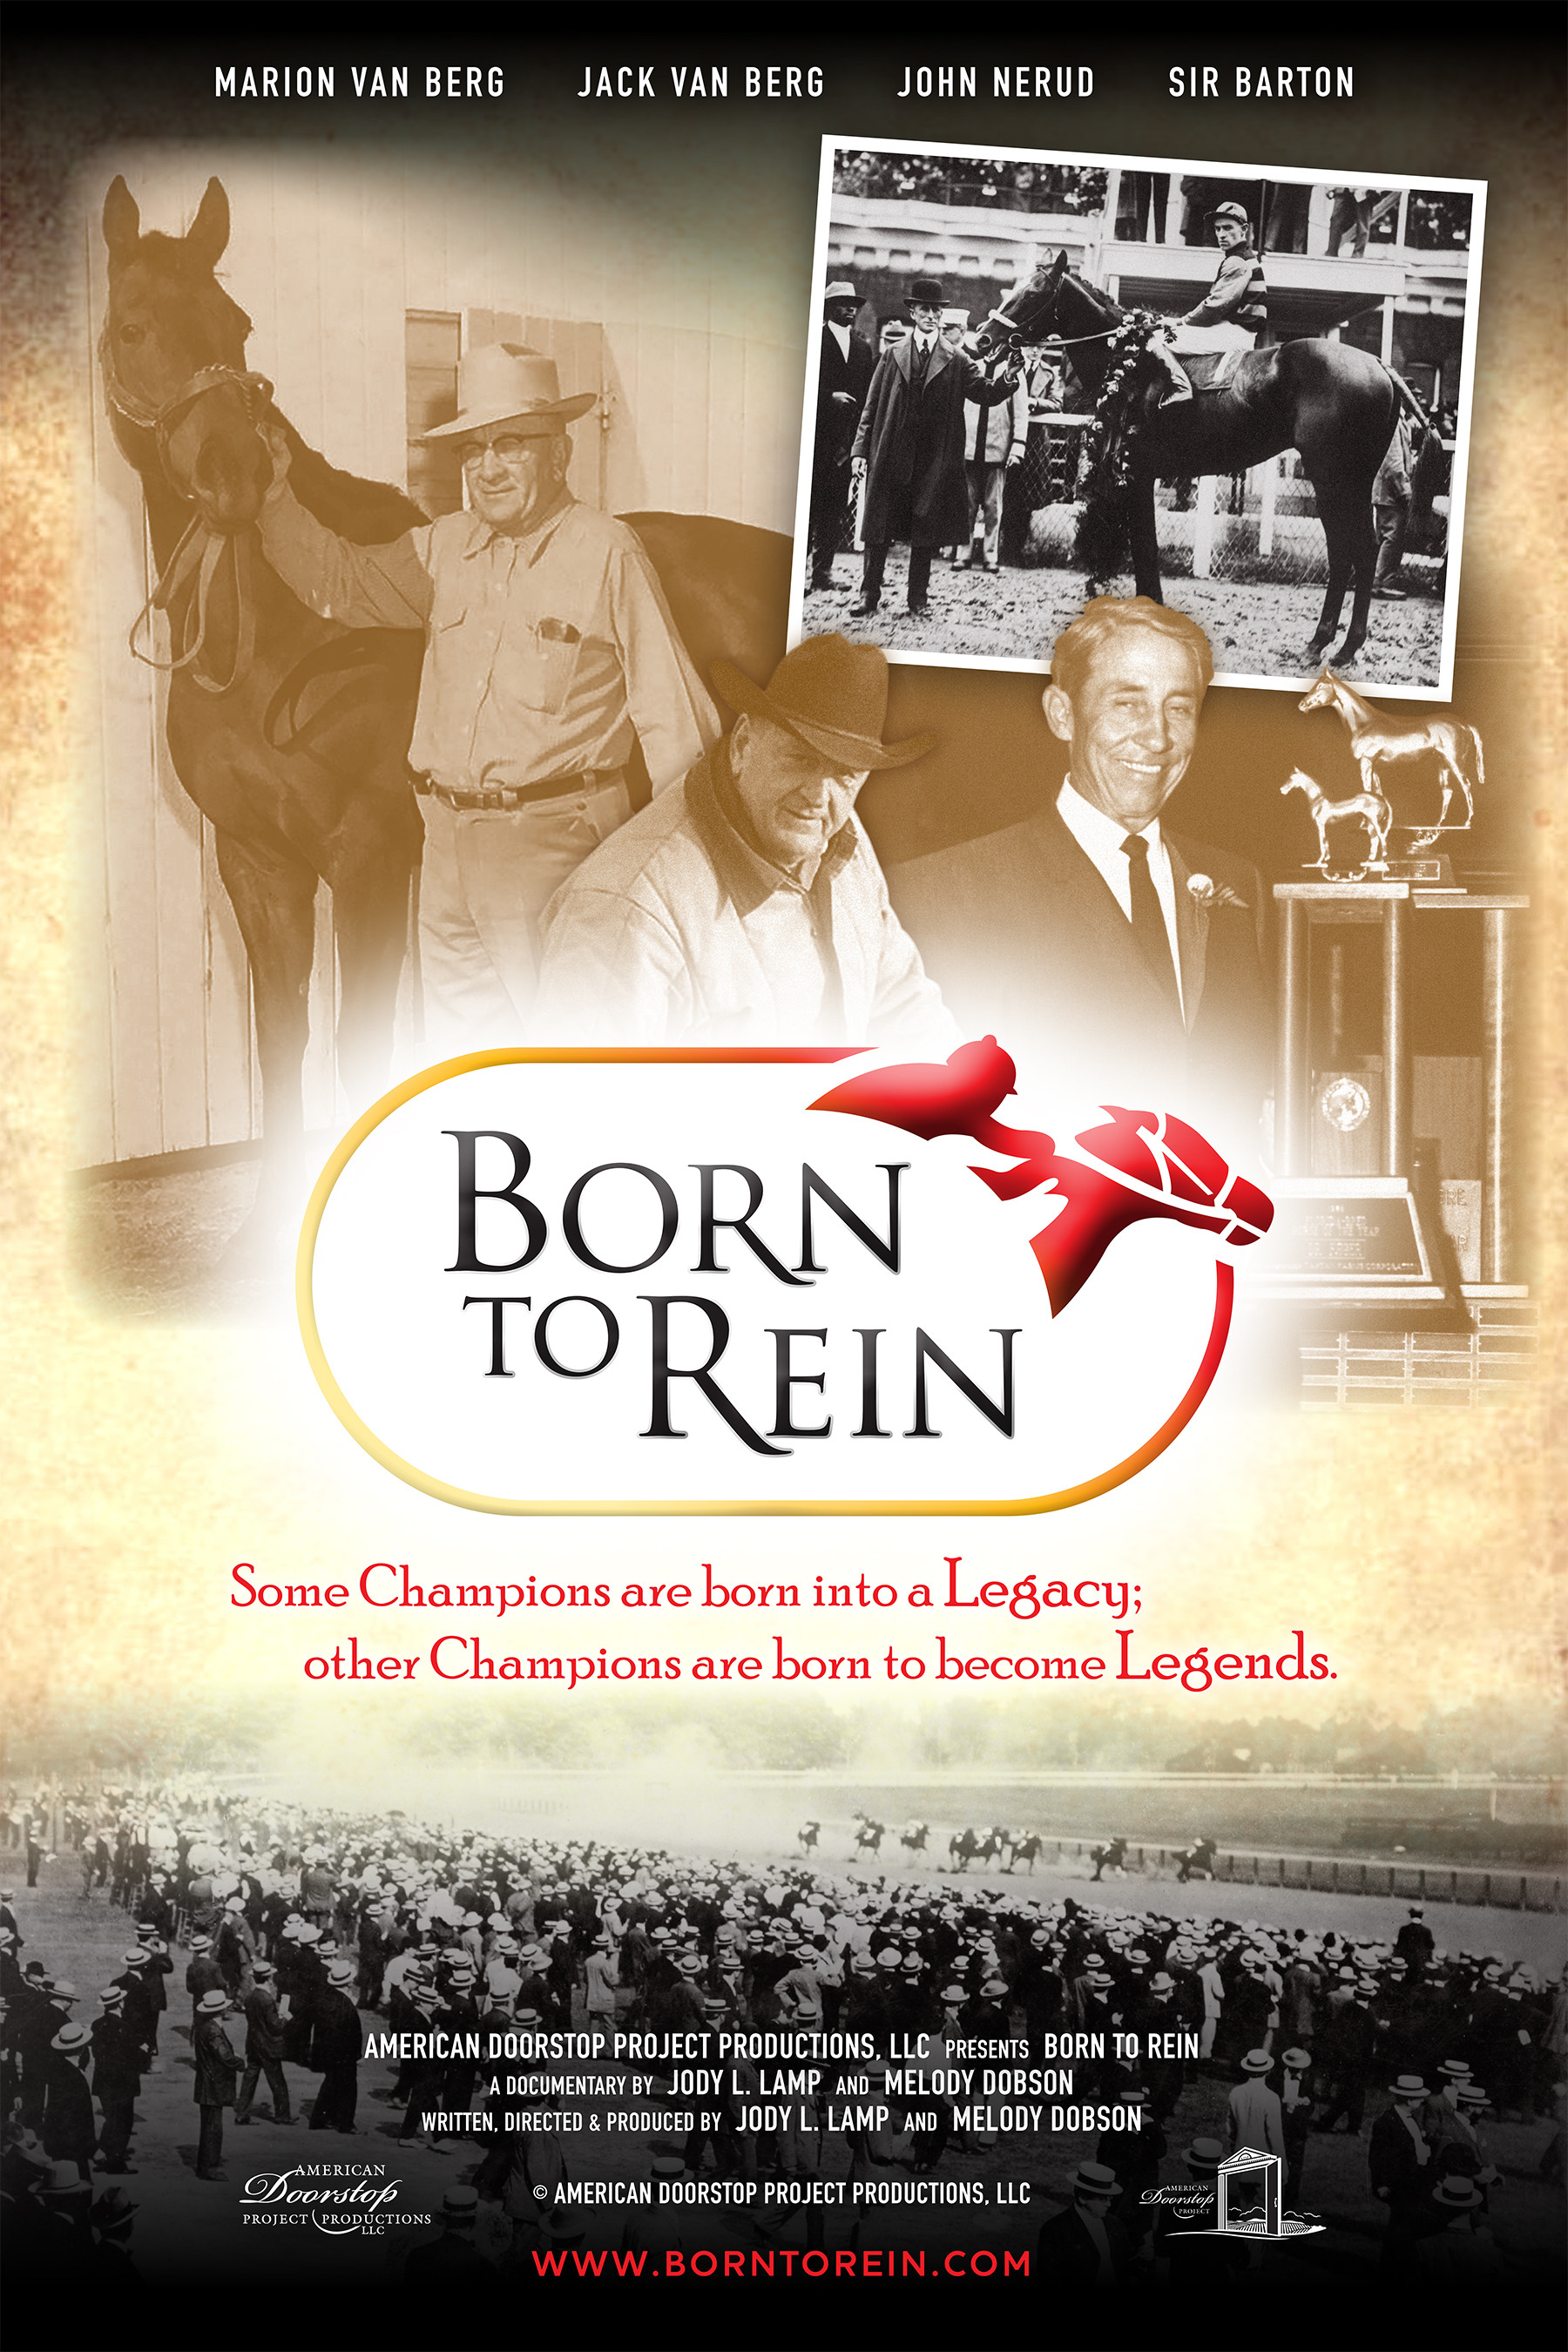 Born to Rein Documentary Film